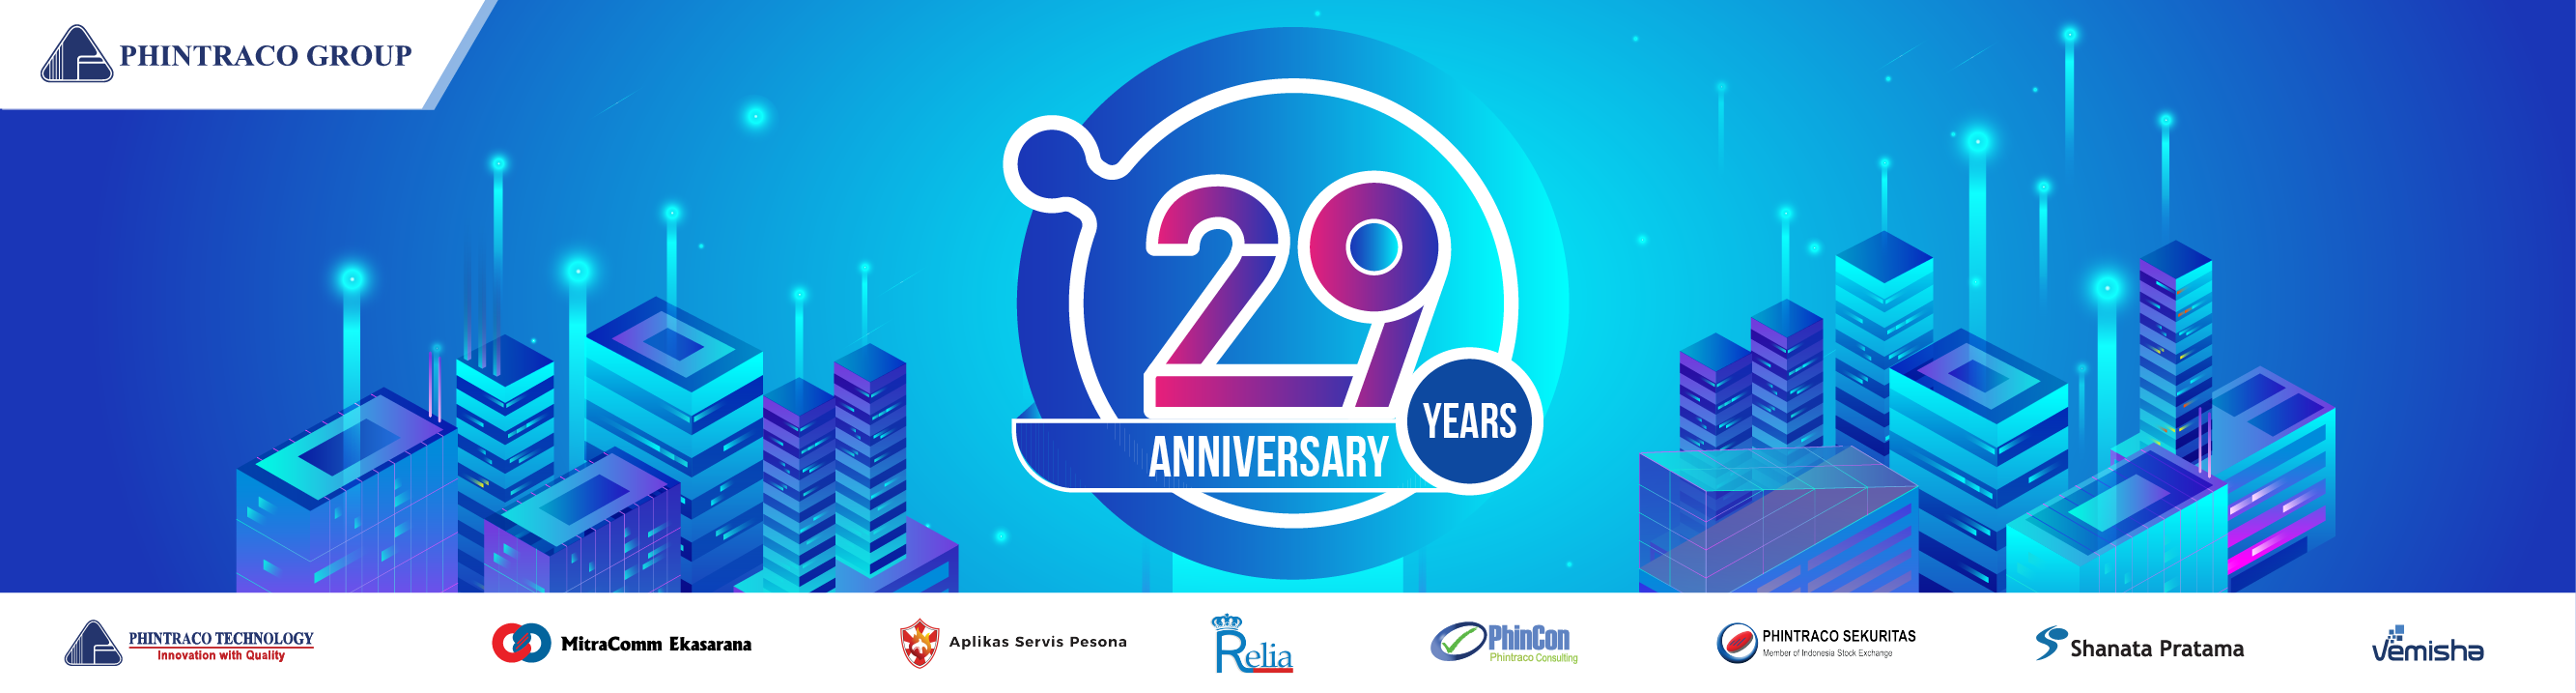 Happy 29th Anniversary, Phintraco Group!